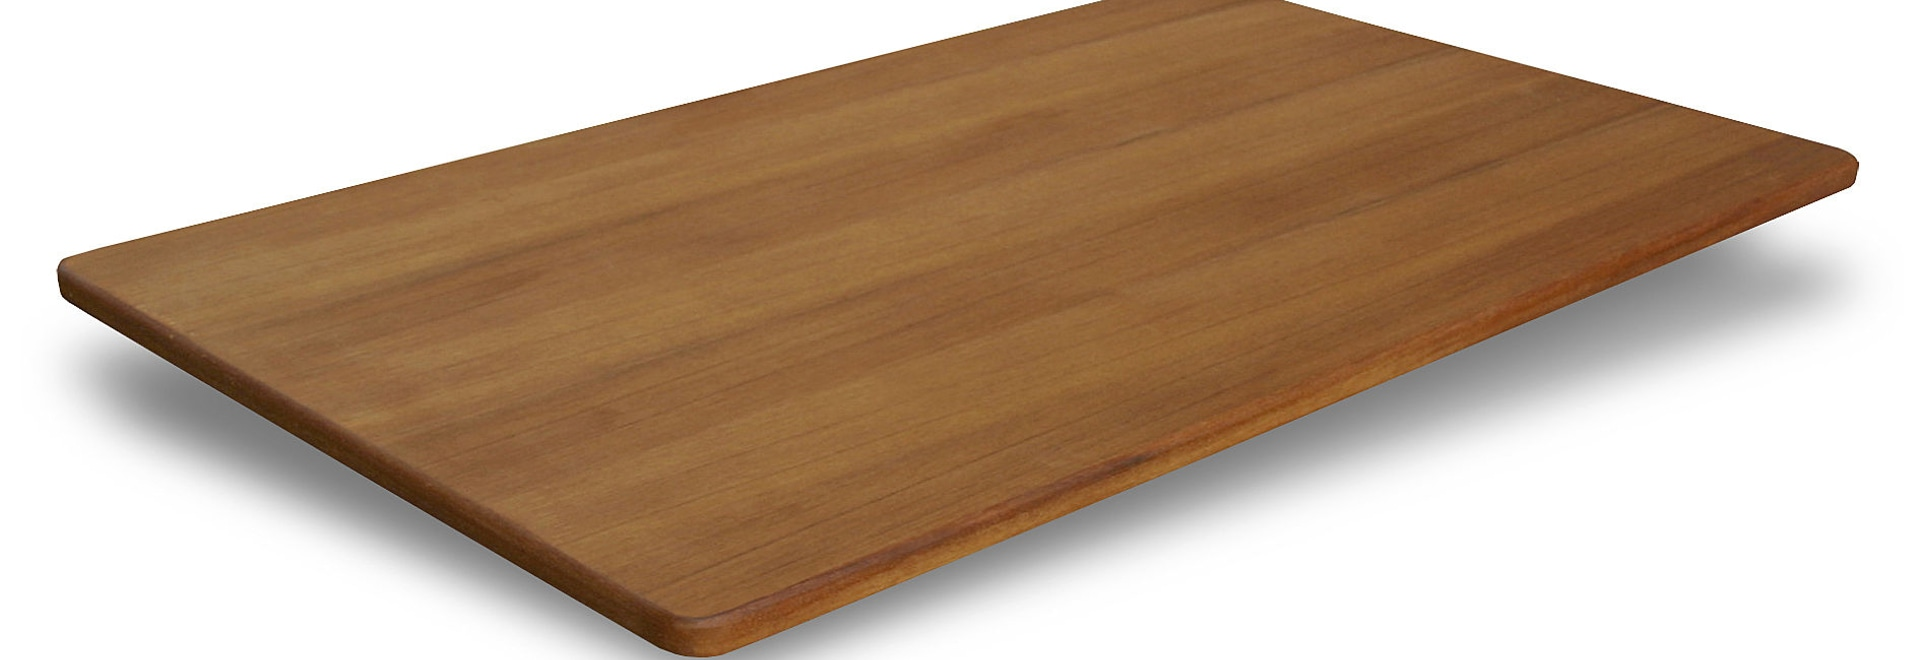 "Range of Teak Table Tops ""Synthesis"" – A practical solution for cockpit area dining"